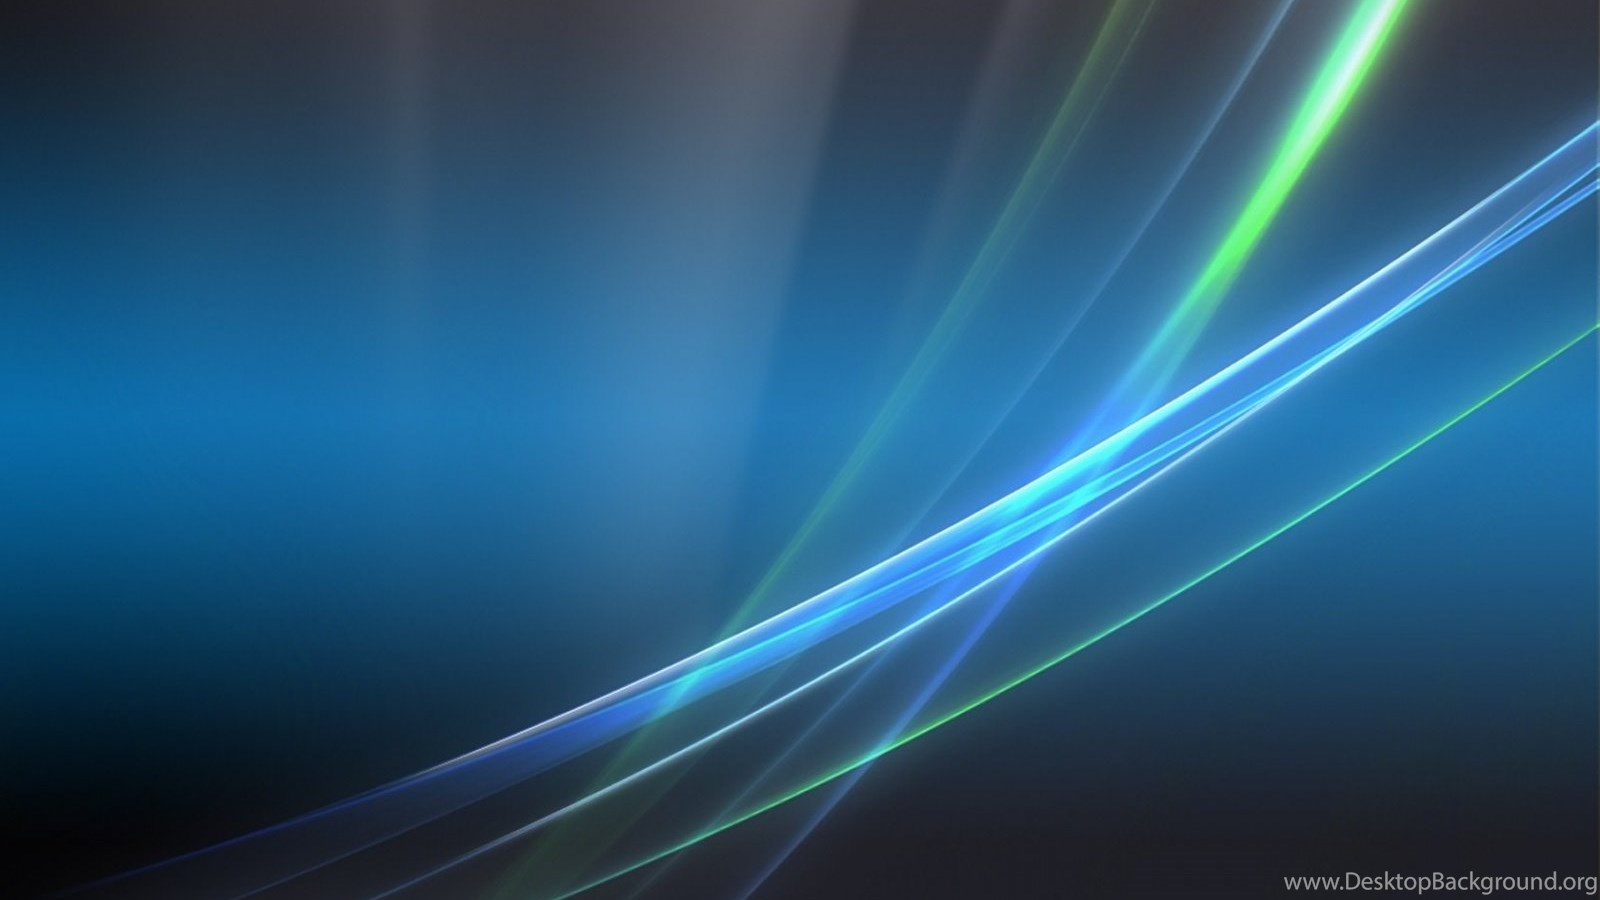 windows ultimate abstract backgrounds wallpapers desktop background